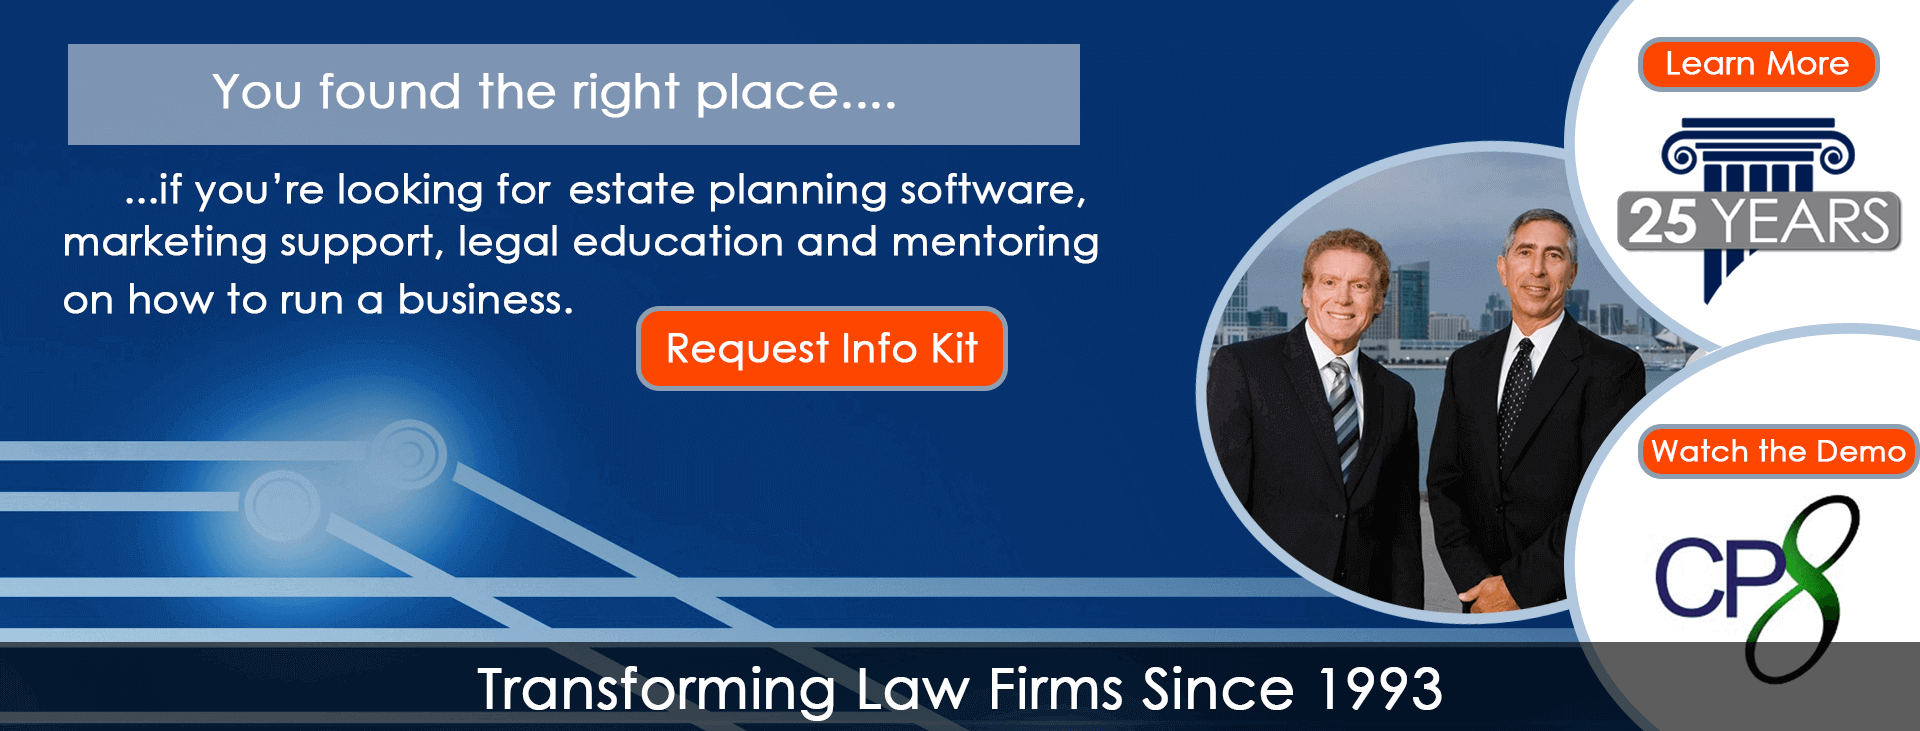 You fine the right place...  if you are looking for estate planing software, marketing support, legal education and mentoring on how to run business.